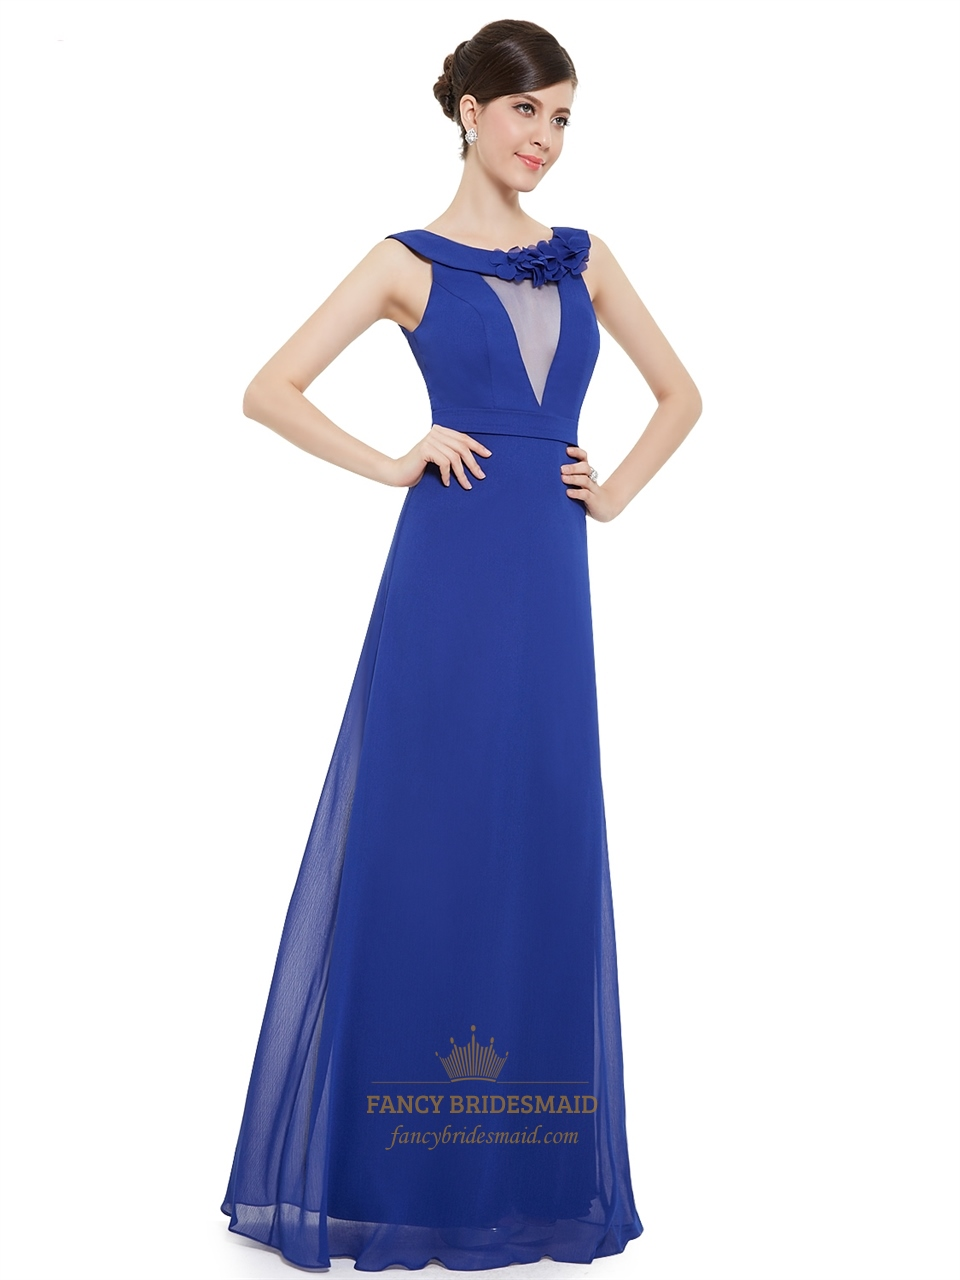 Sapphire Blue Chiffon Jewel Embellished Long Bridesmaid Dress With Floral Detail